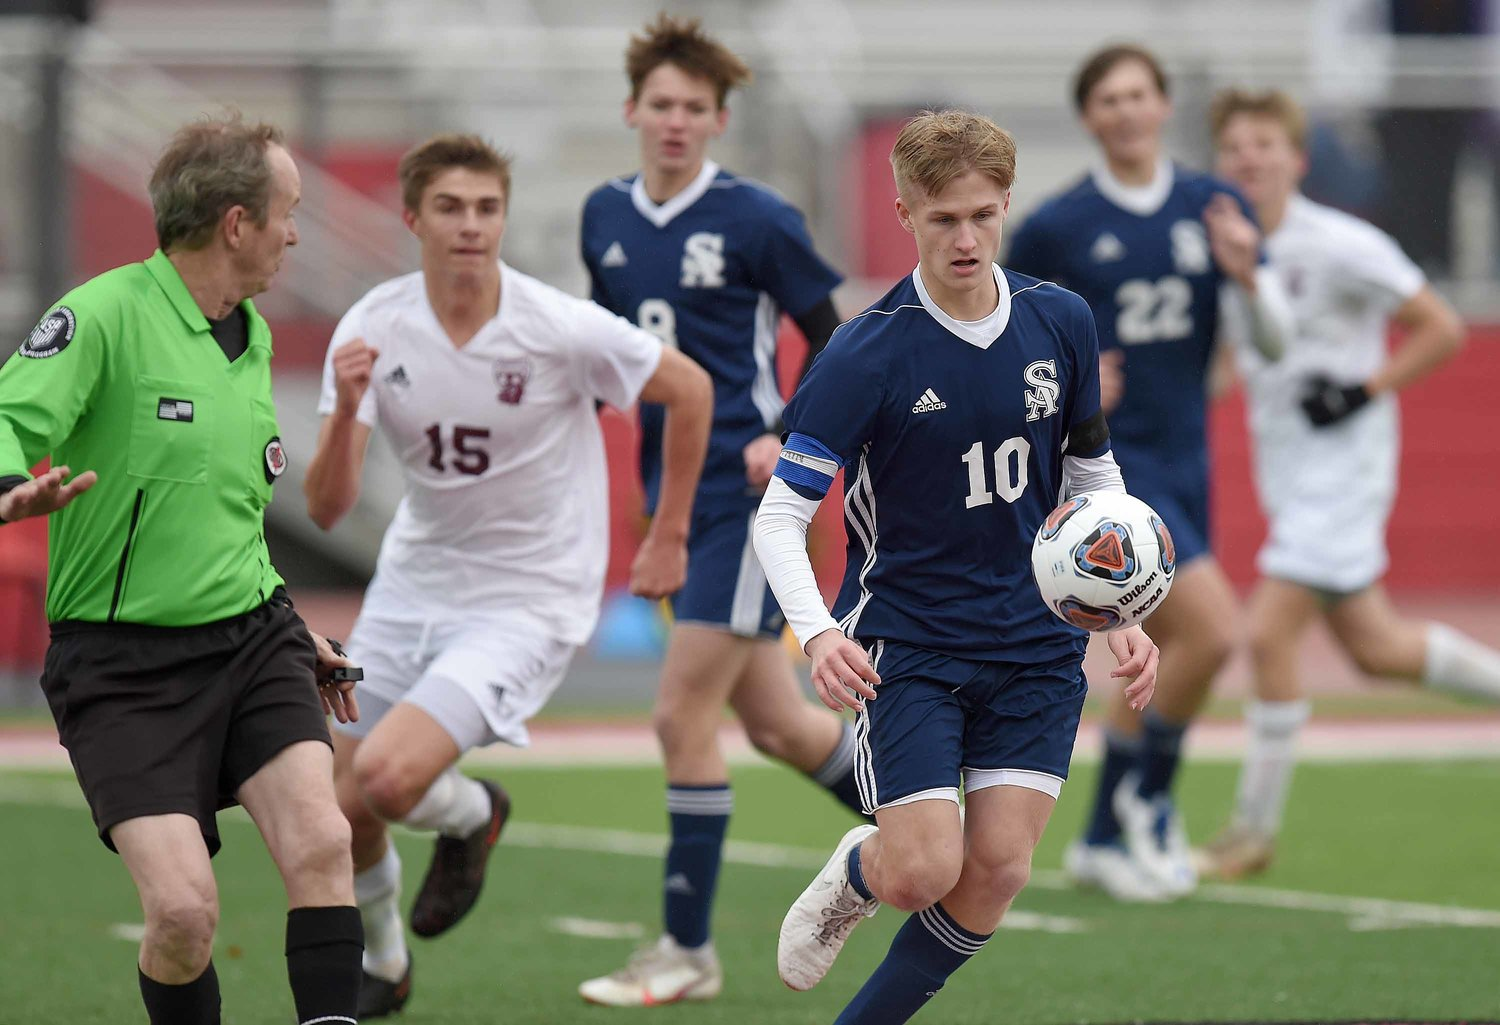 St. Andrew's Jackson Bataille (10) moves the ball against Clarkdale in the MHSAA Class I State Soccer Championships on Saturday, February 6, 2021, at Clinton High School in Clinton, Miss.